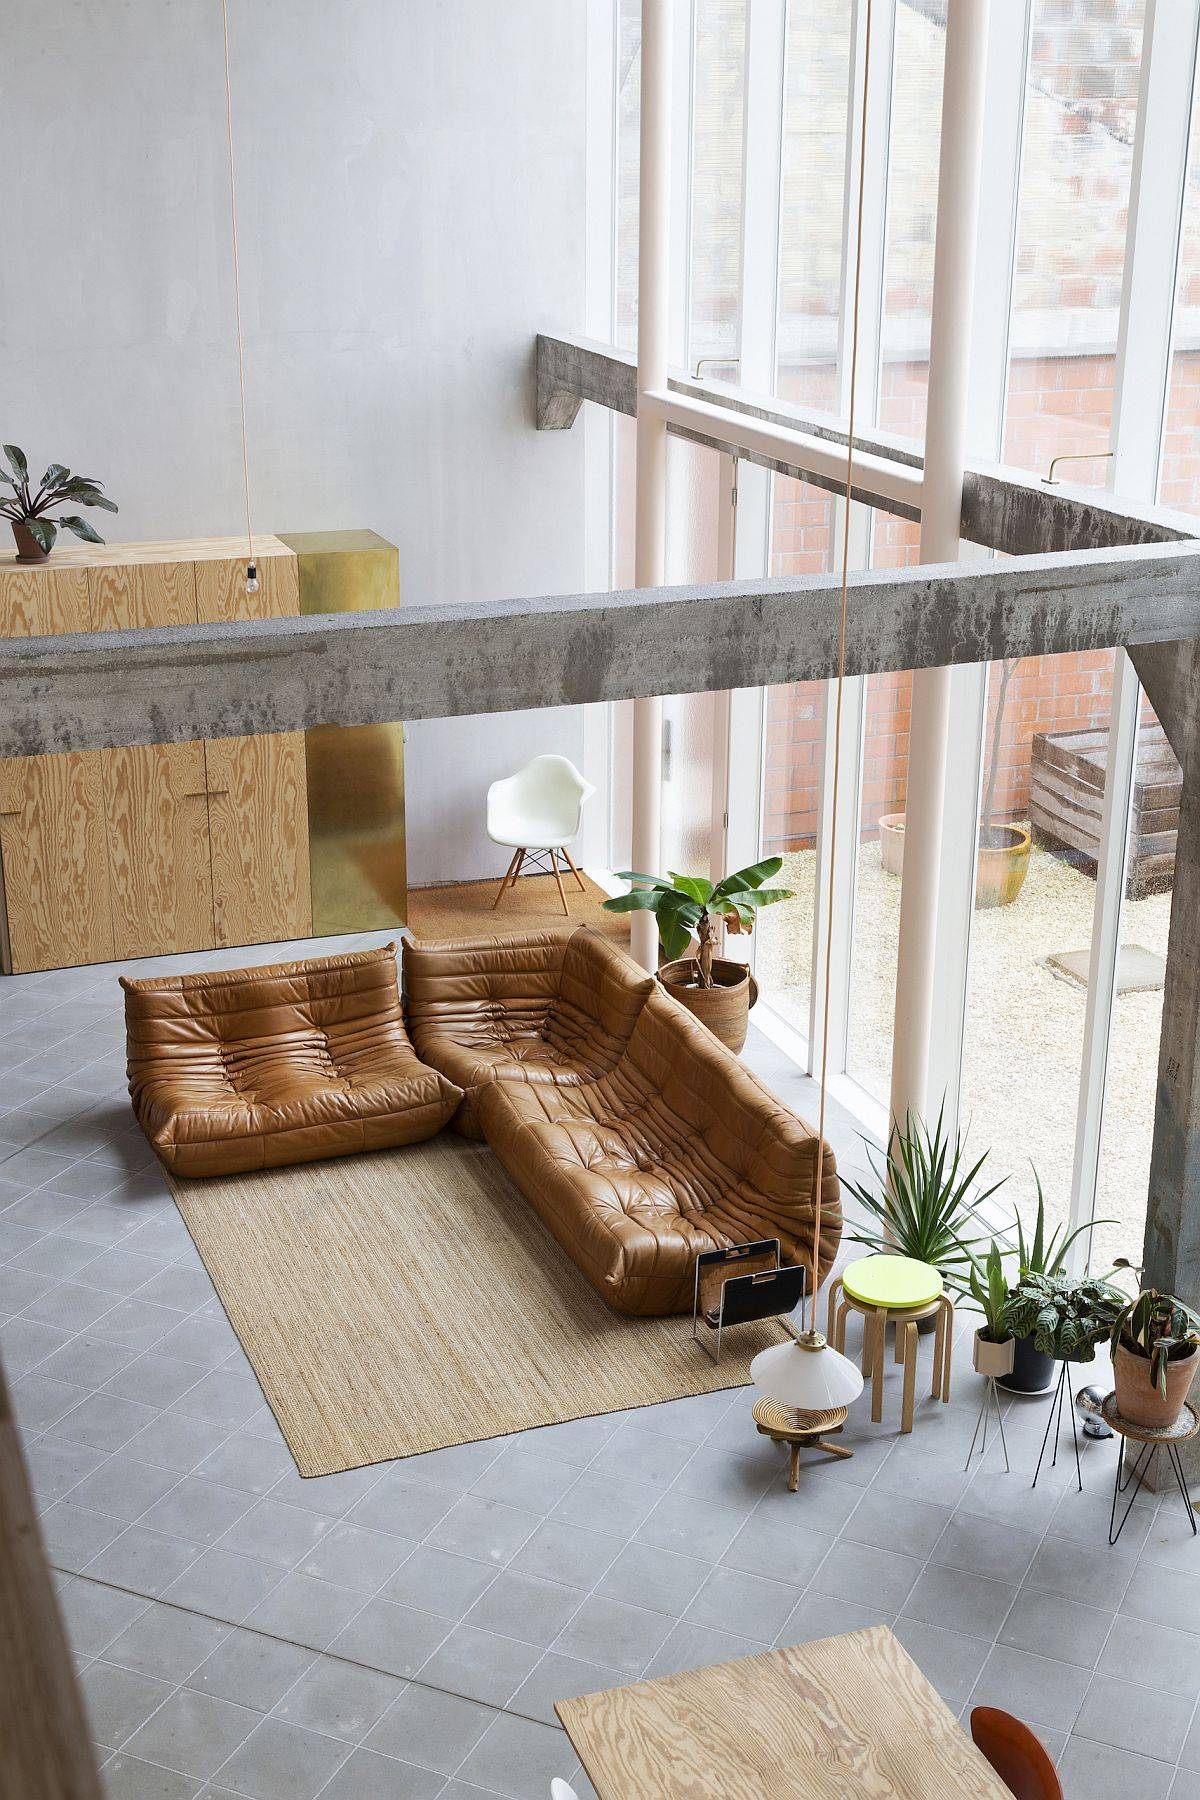 Spacious-and-sweeping-new-interiors-of-the-home-adapt-to-the-basic-design-of-the-old-brewery-89110